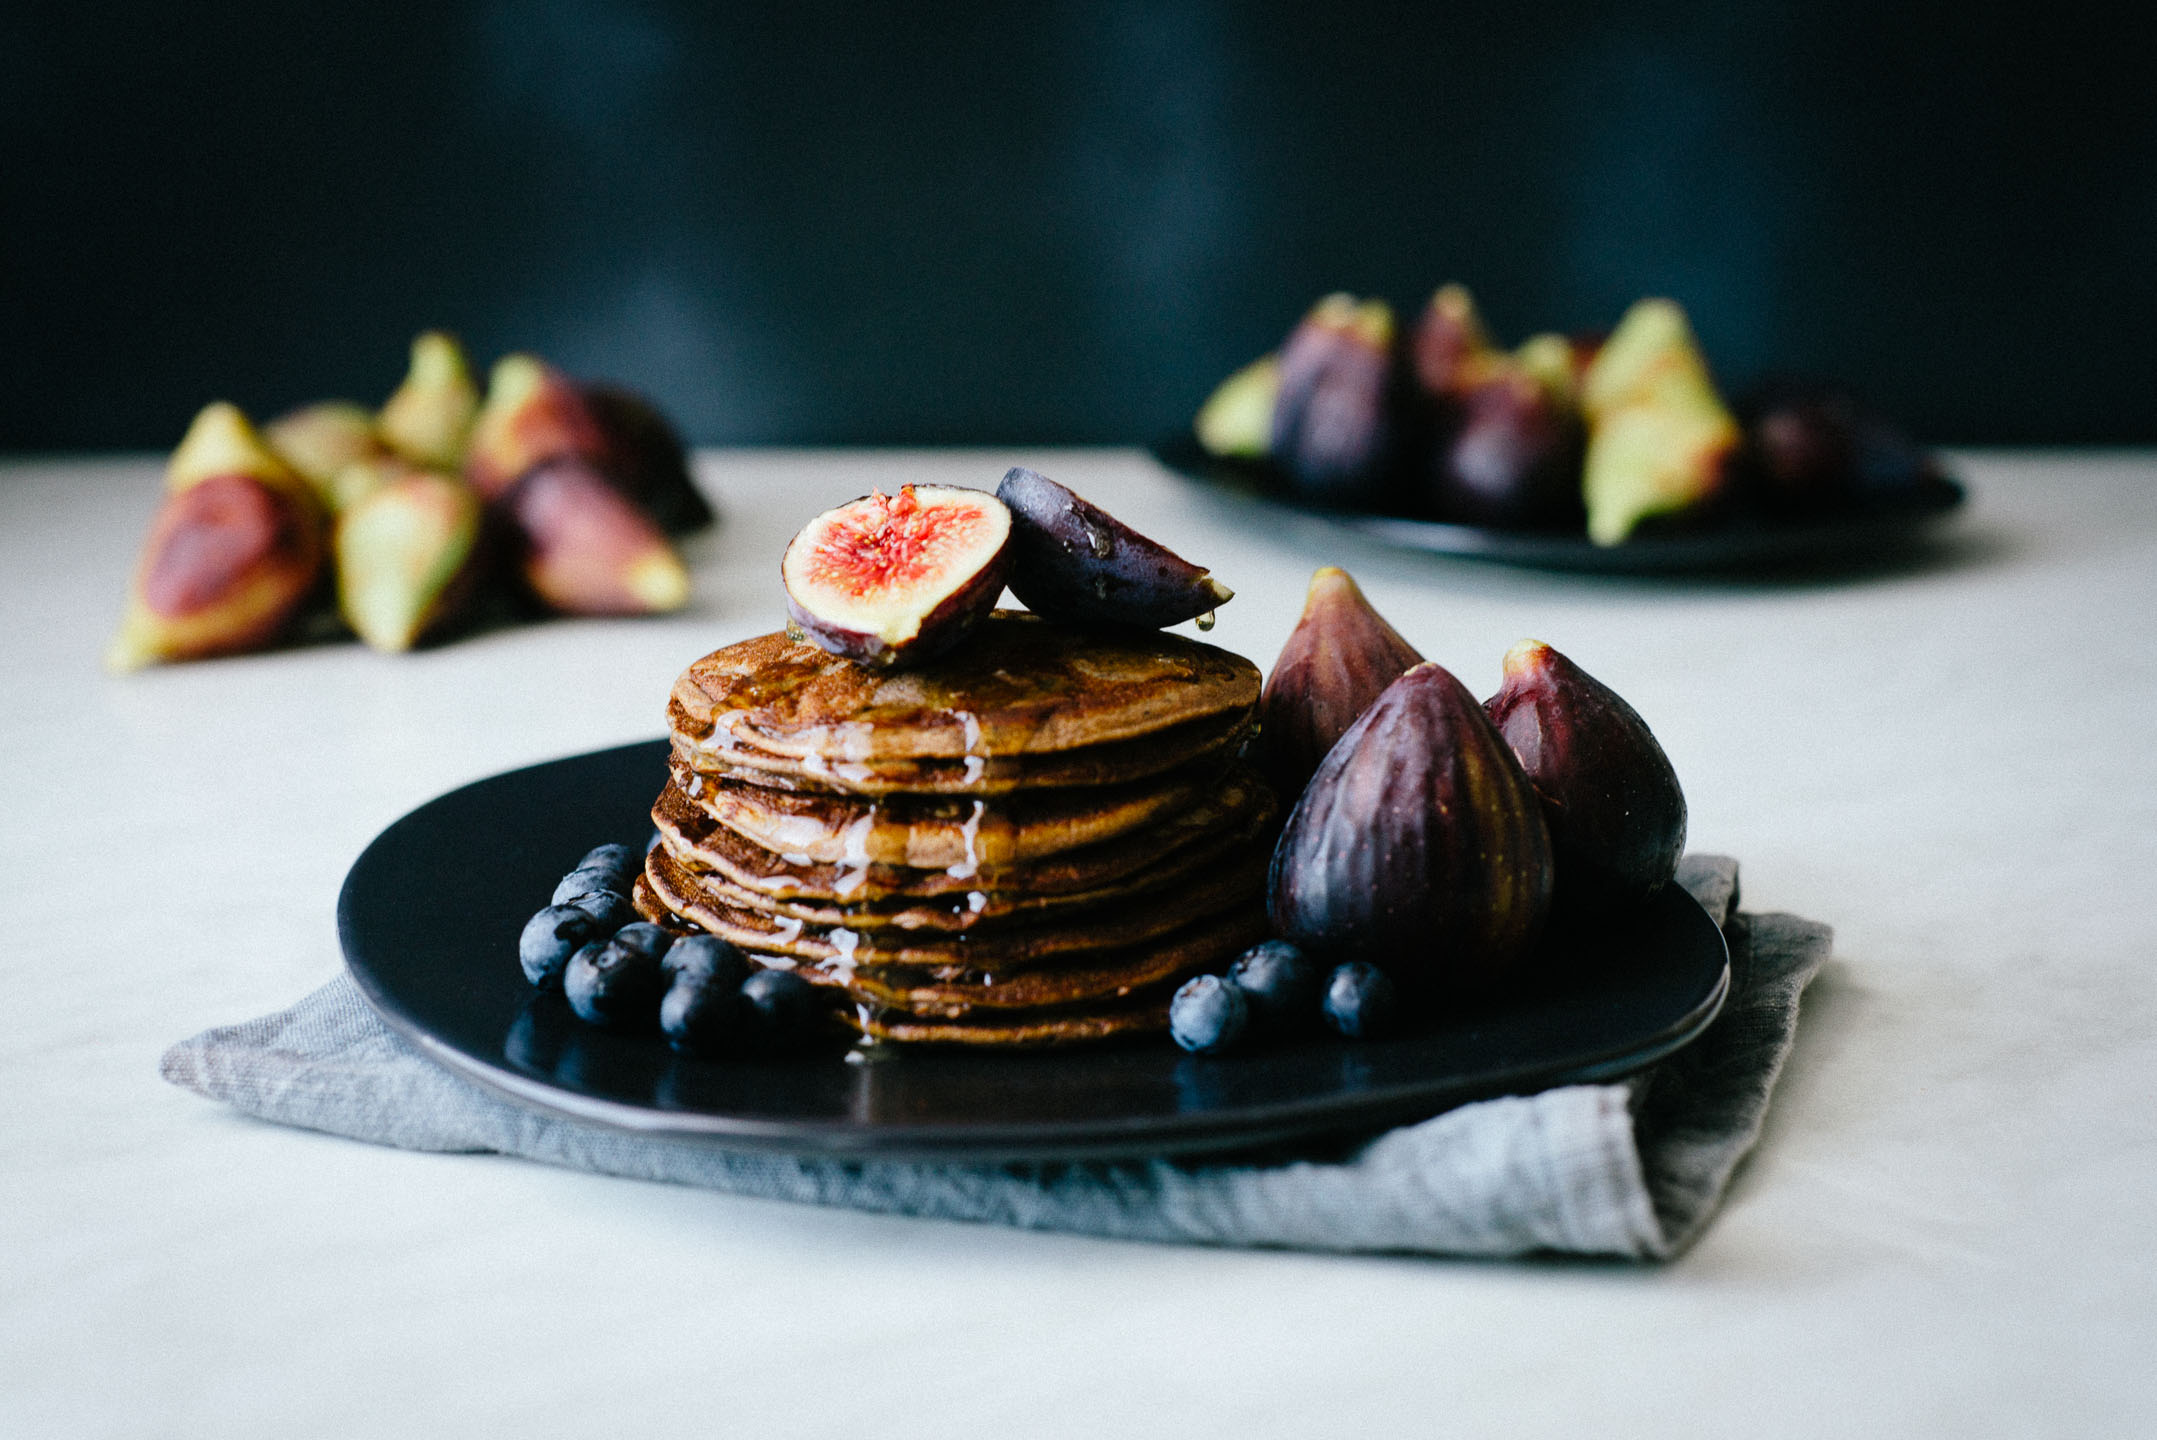 Chocolate_Banana_Pancakes_Christina_Soong-2